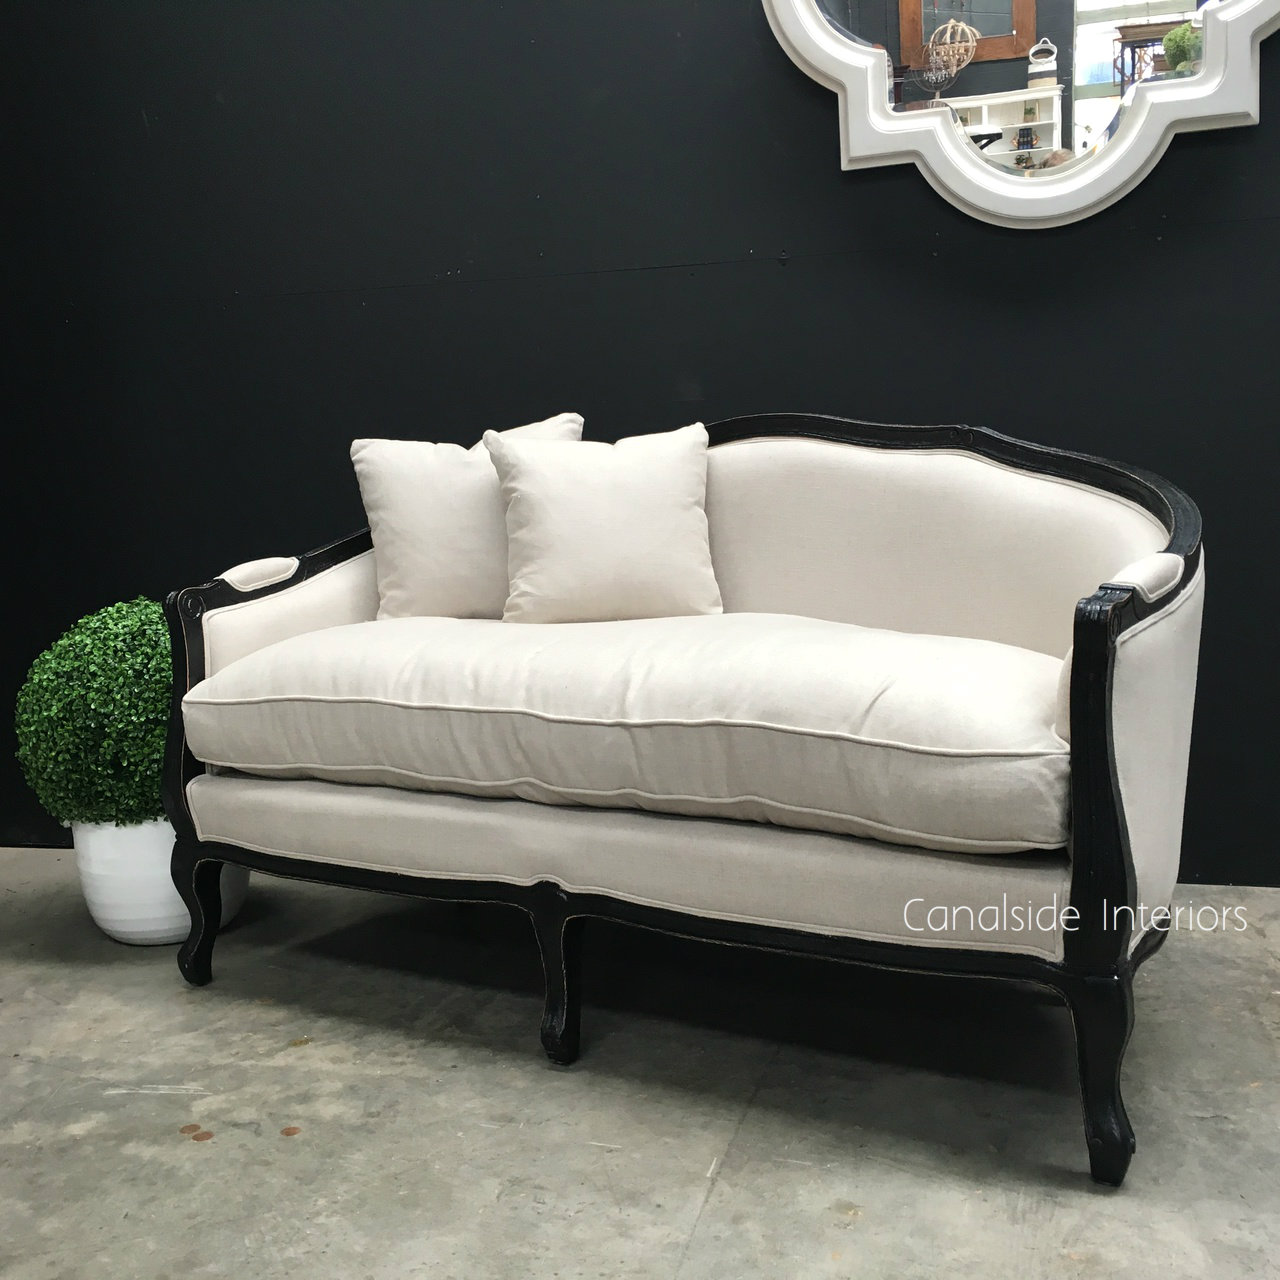 Canape Sofa Arya 2 5 Seater Canape Sofa Distressed Black With Cream Upholstery Sold Out More Coming Soonc